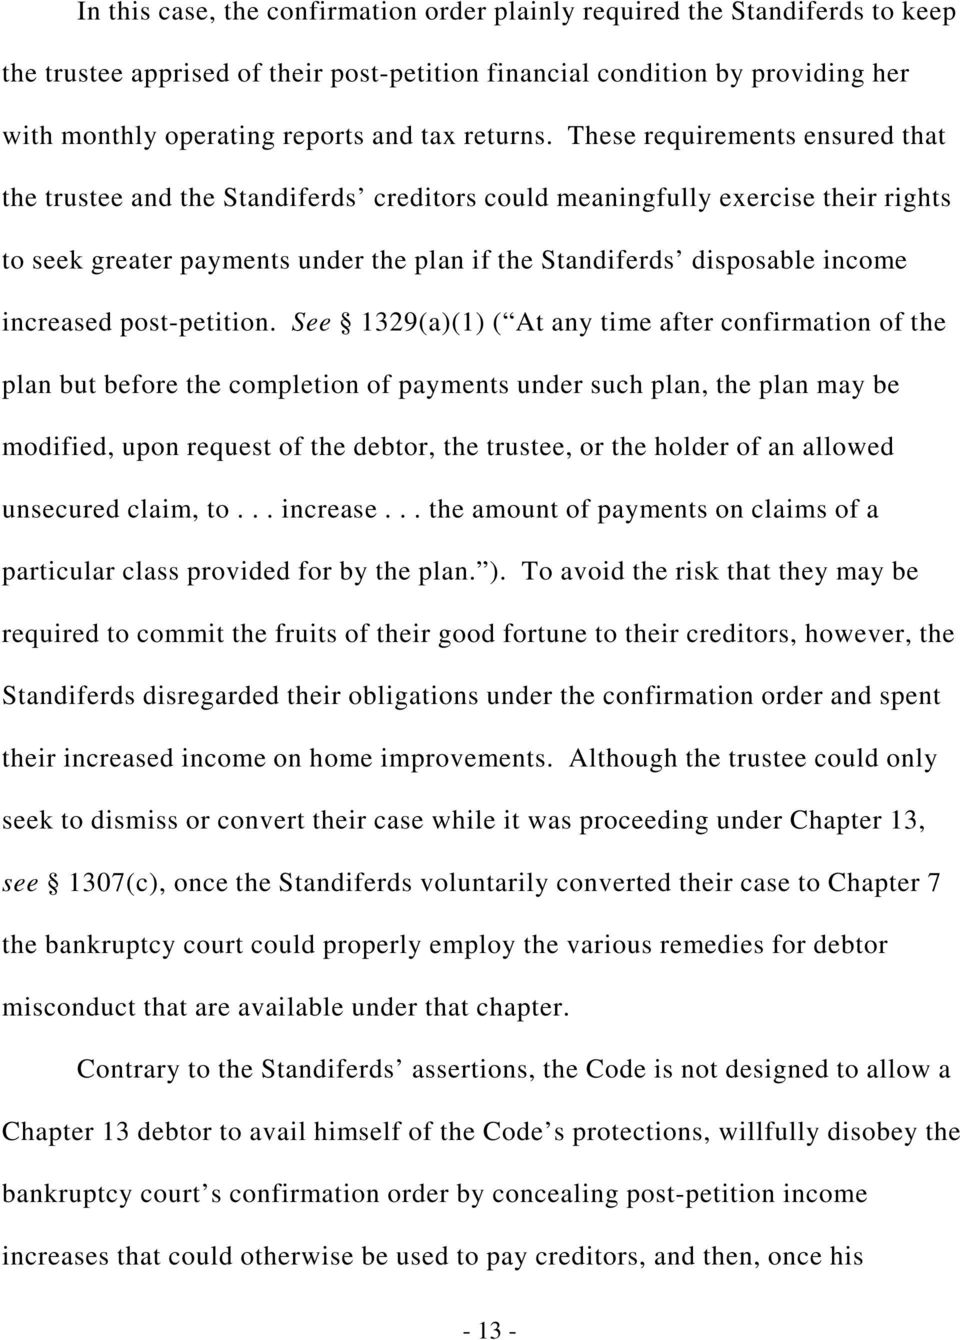 These requirements ensured that the trustee and the Standiferds creditors could meaningfully exercise their rights to seek greater payments under the plan if the Standiferds disposable income